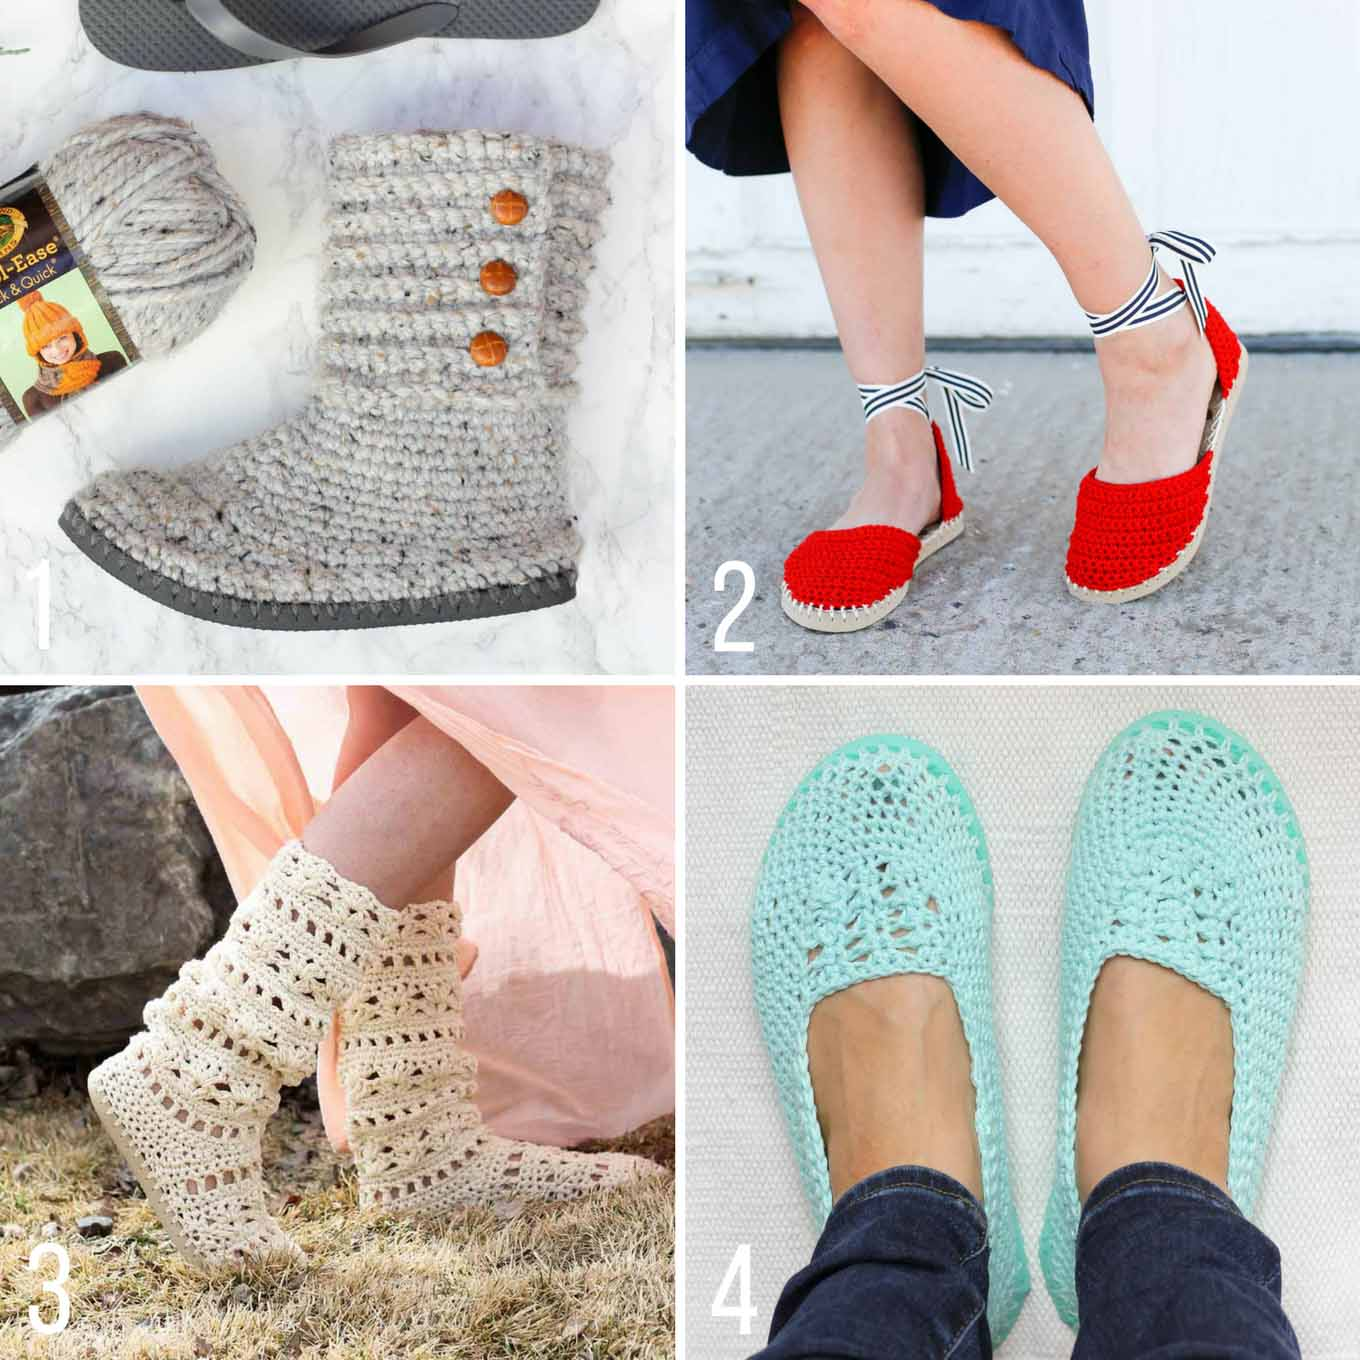 cdd3dea59211a Crochet Shoes With Flip Flop Soles - Free Moccasin Pattern!